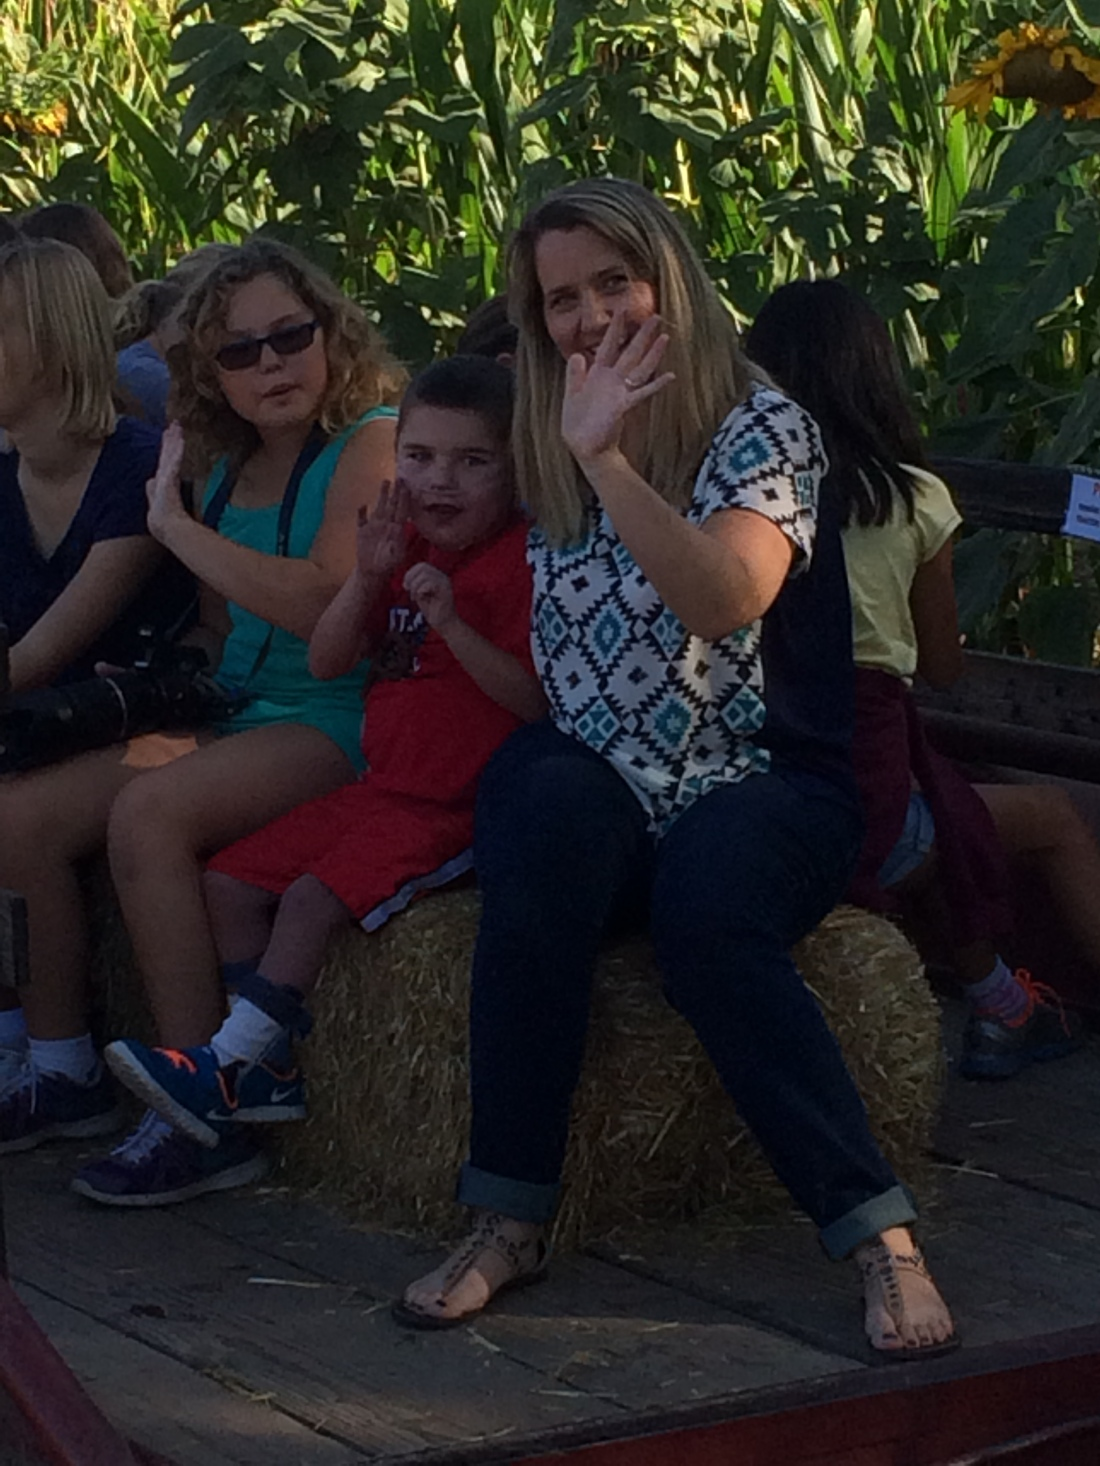 Rudy and Nurse Sara and big buddies having fun on the hay ride.